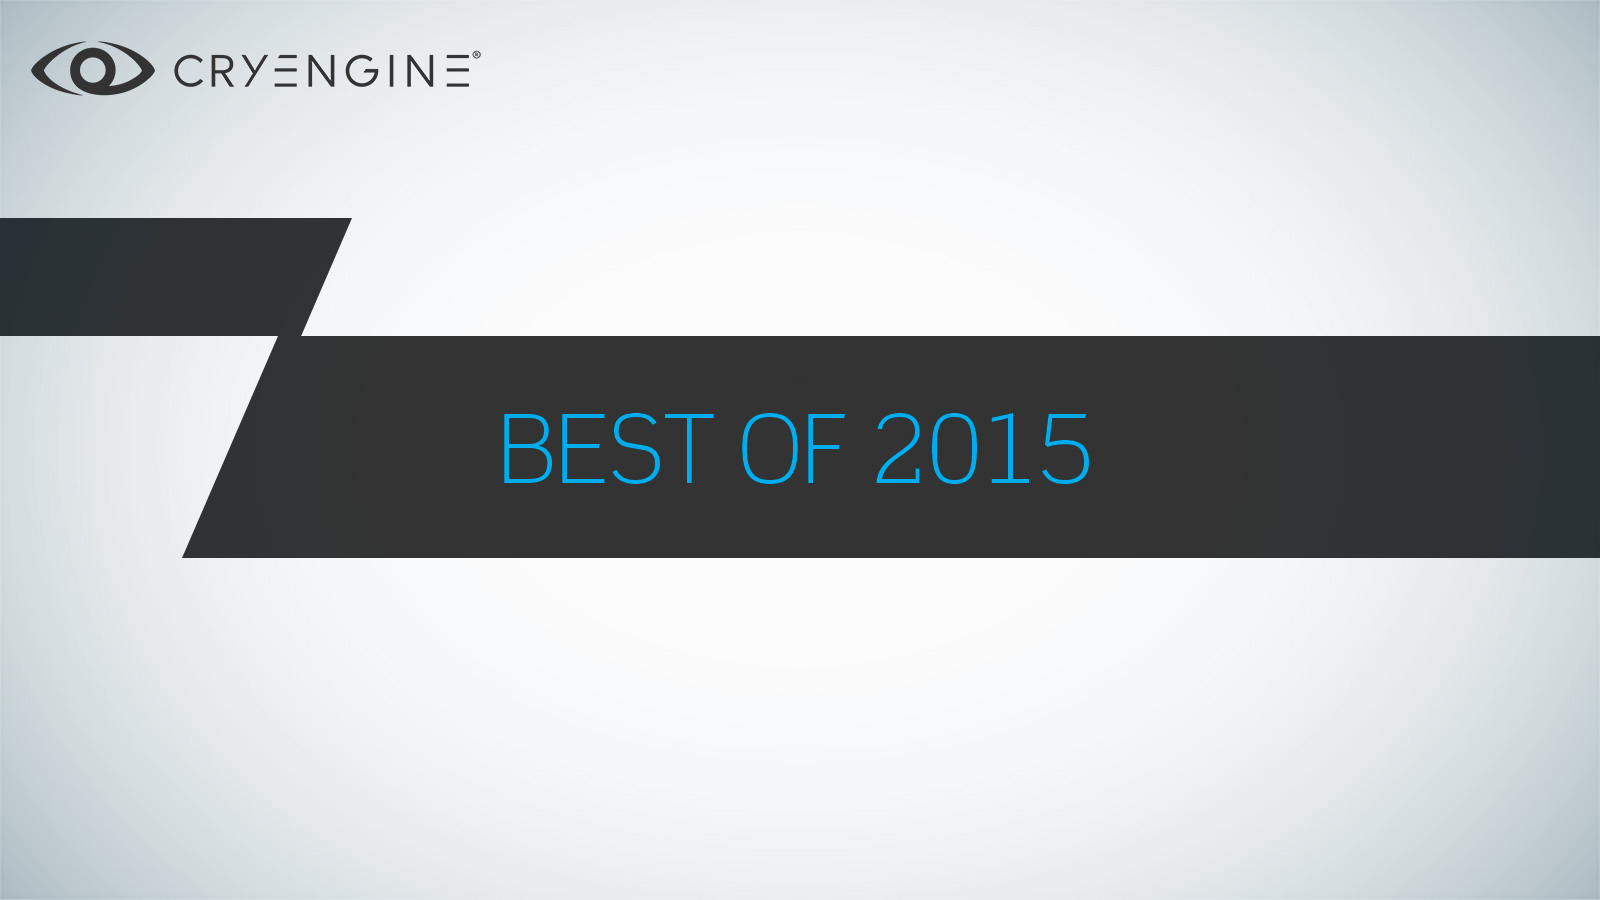 CRYENGINE's Best of 2015